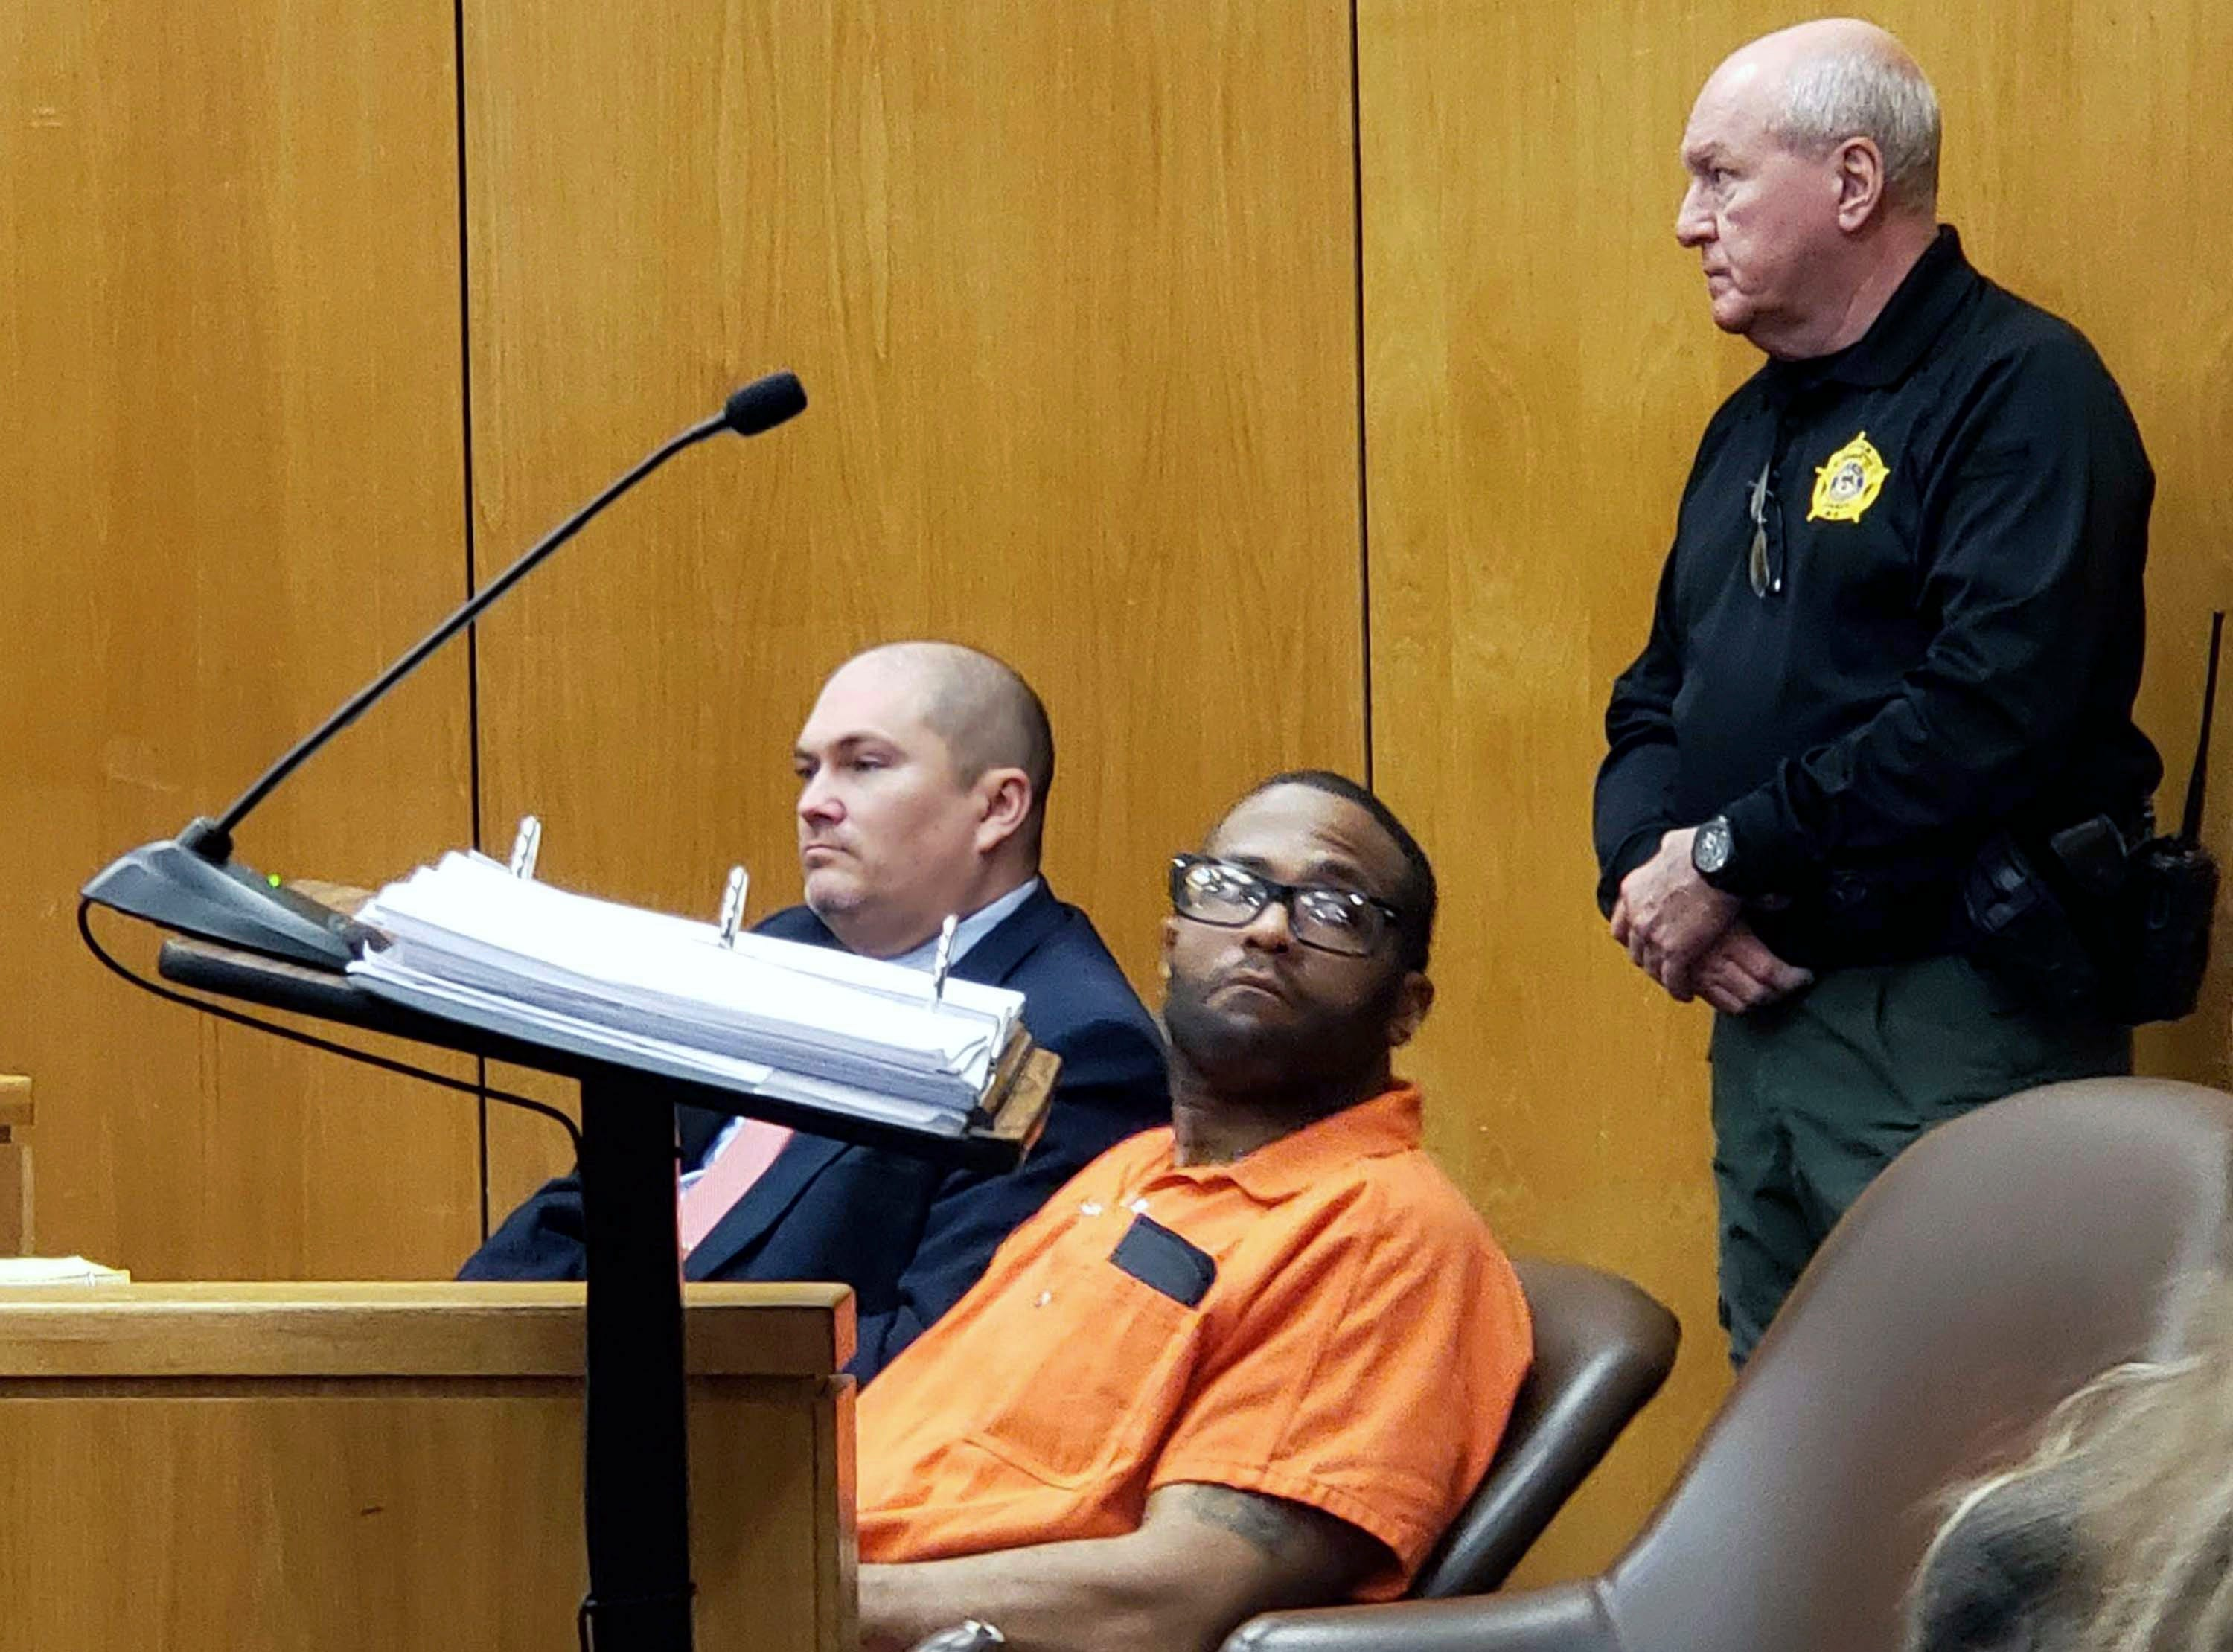 Godbolt, accused of killing 8 in Brookhaven shooting spree, now has trial date set | Clarion Ledger